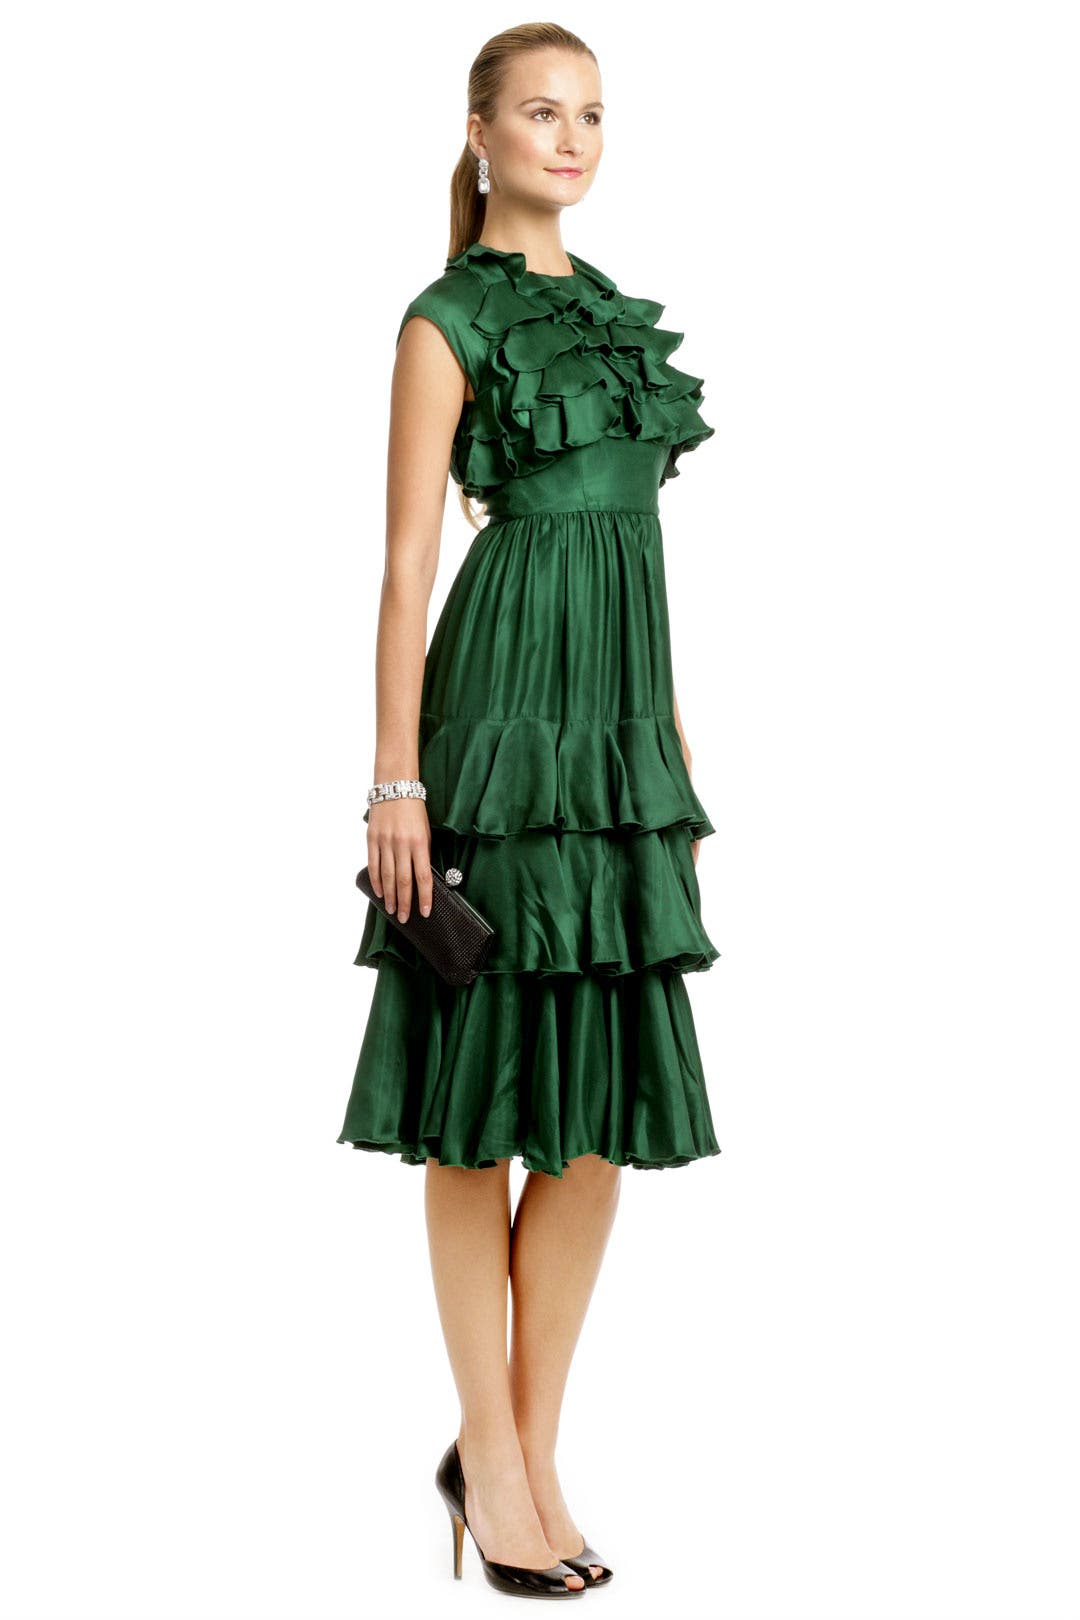 Ariana Dress by Ronny Kobo for $65 - $80 | Rent the Runway